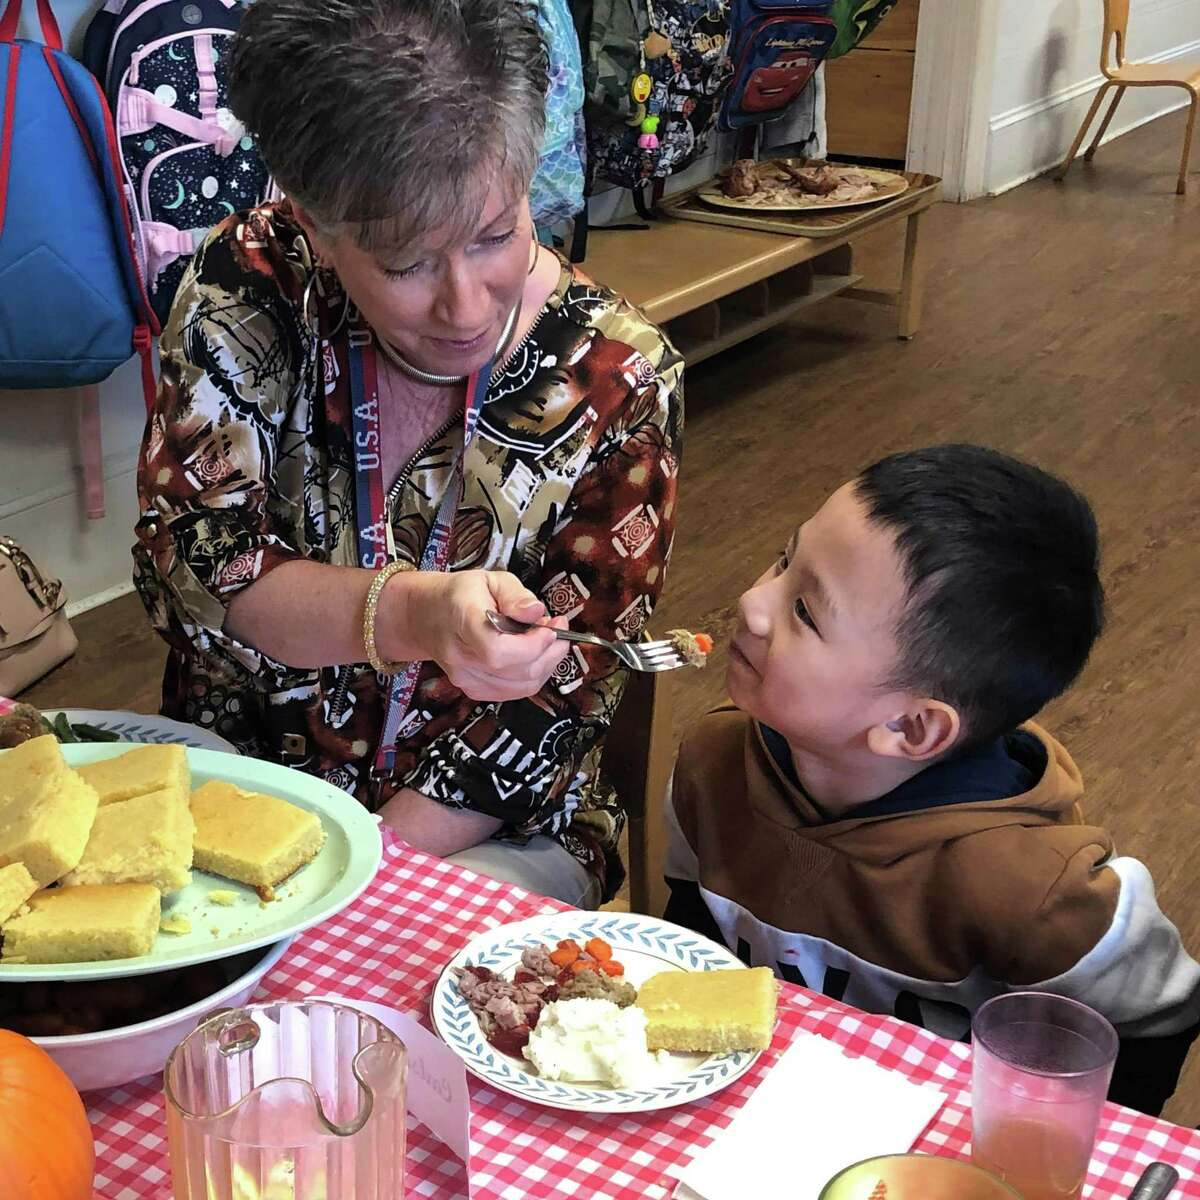 Diane Cunningham of the personnel office at Roger Sherman Town Hall in New Milford, encourages Carlson Cai, 4, to eat his vegetables during the meal.